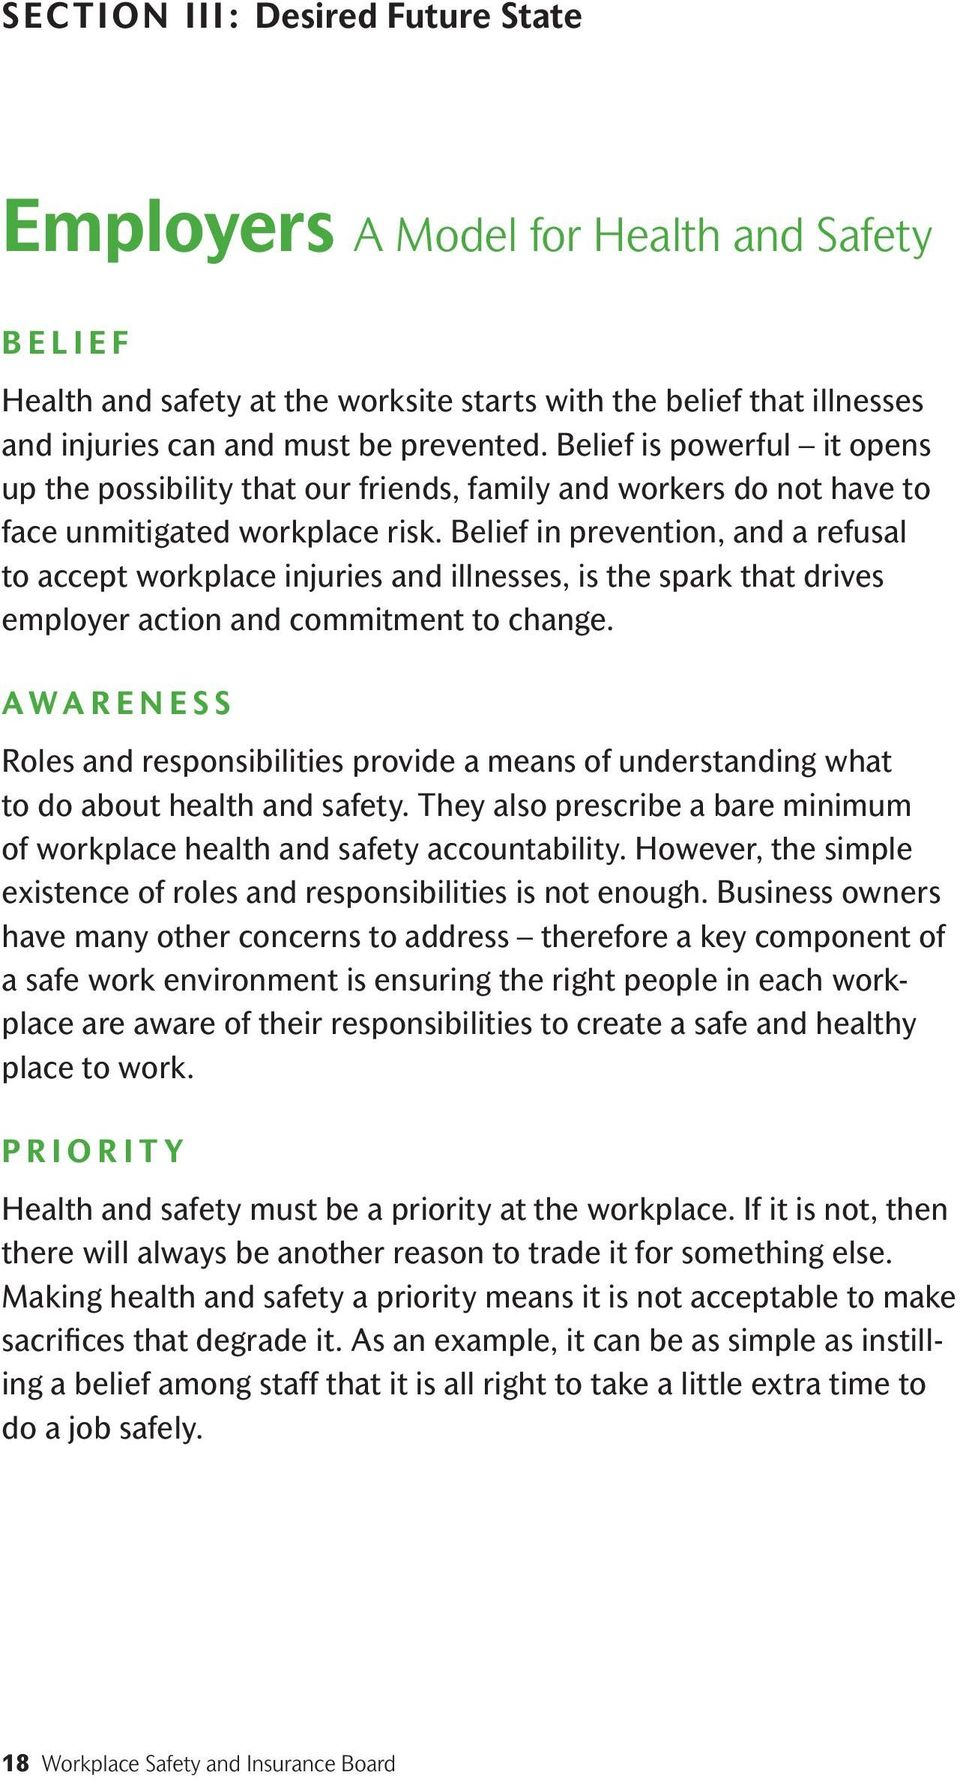 Belief in prevention, and a refusal to accept workplace injuries and illnesses, is the spark that drives employer action and commitment to change.